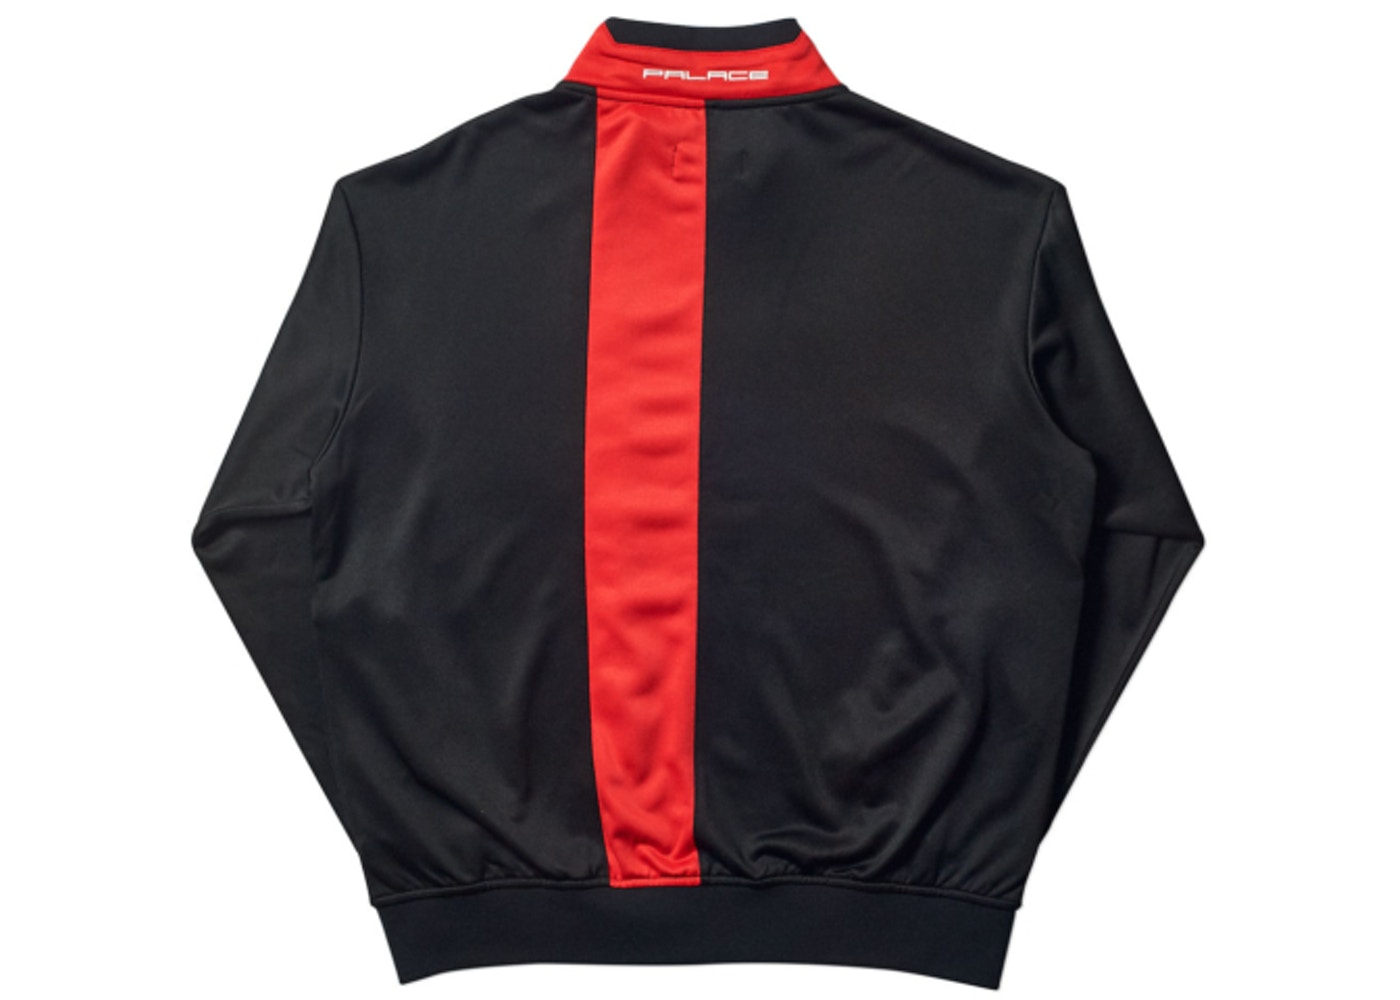 Palace Ritual Track Top Black/Red